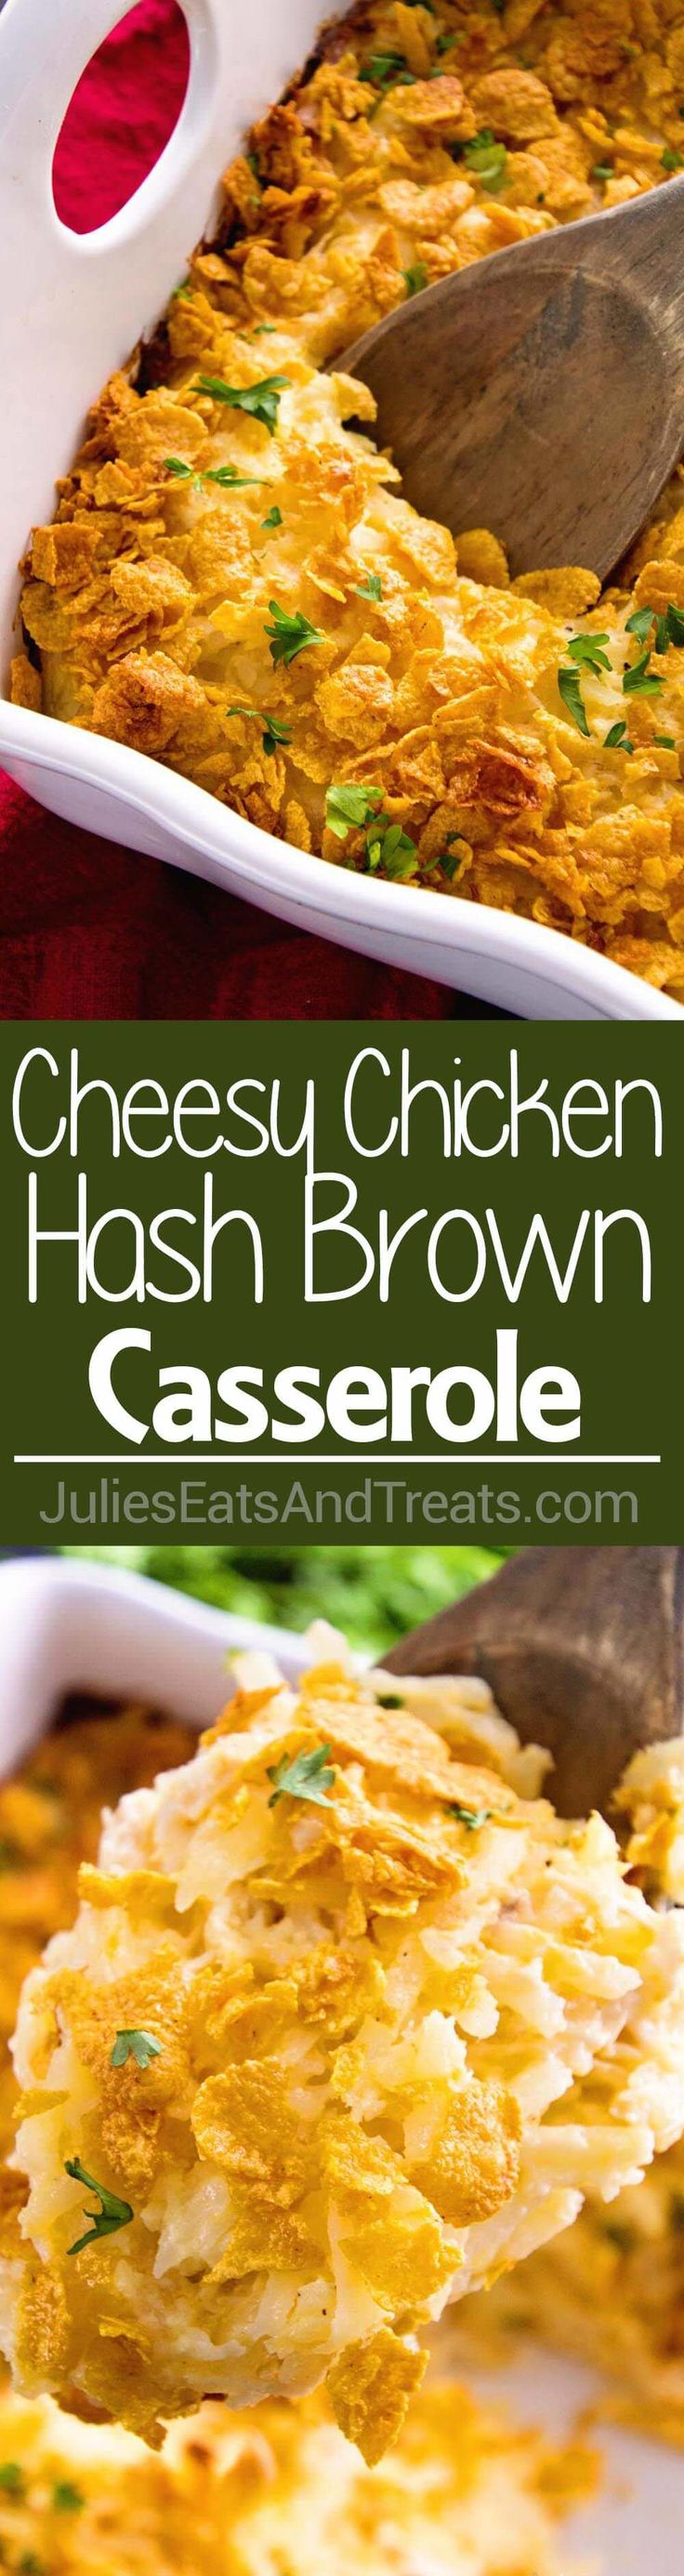 Cheesy Hash Brown Chicken Casserole ~ Your Favorite Cheesy Hash Brown Casserole In a Main Dish!  via @julieseats